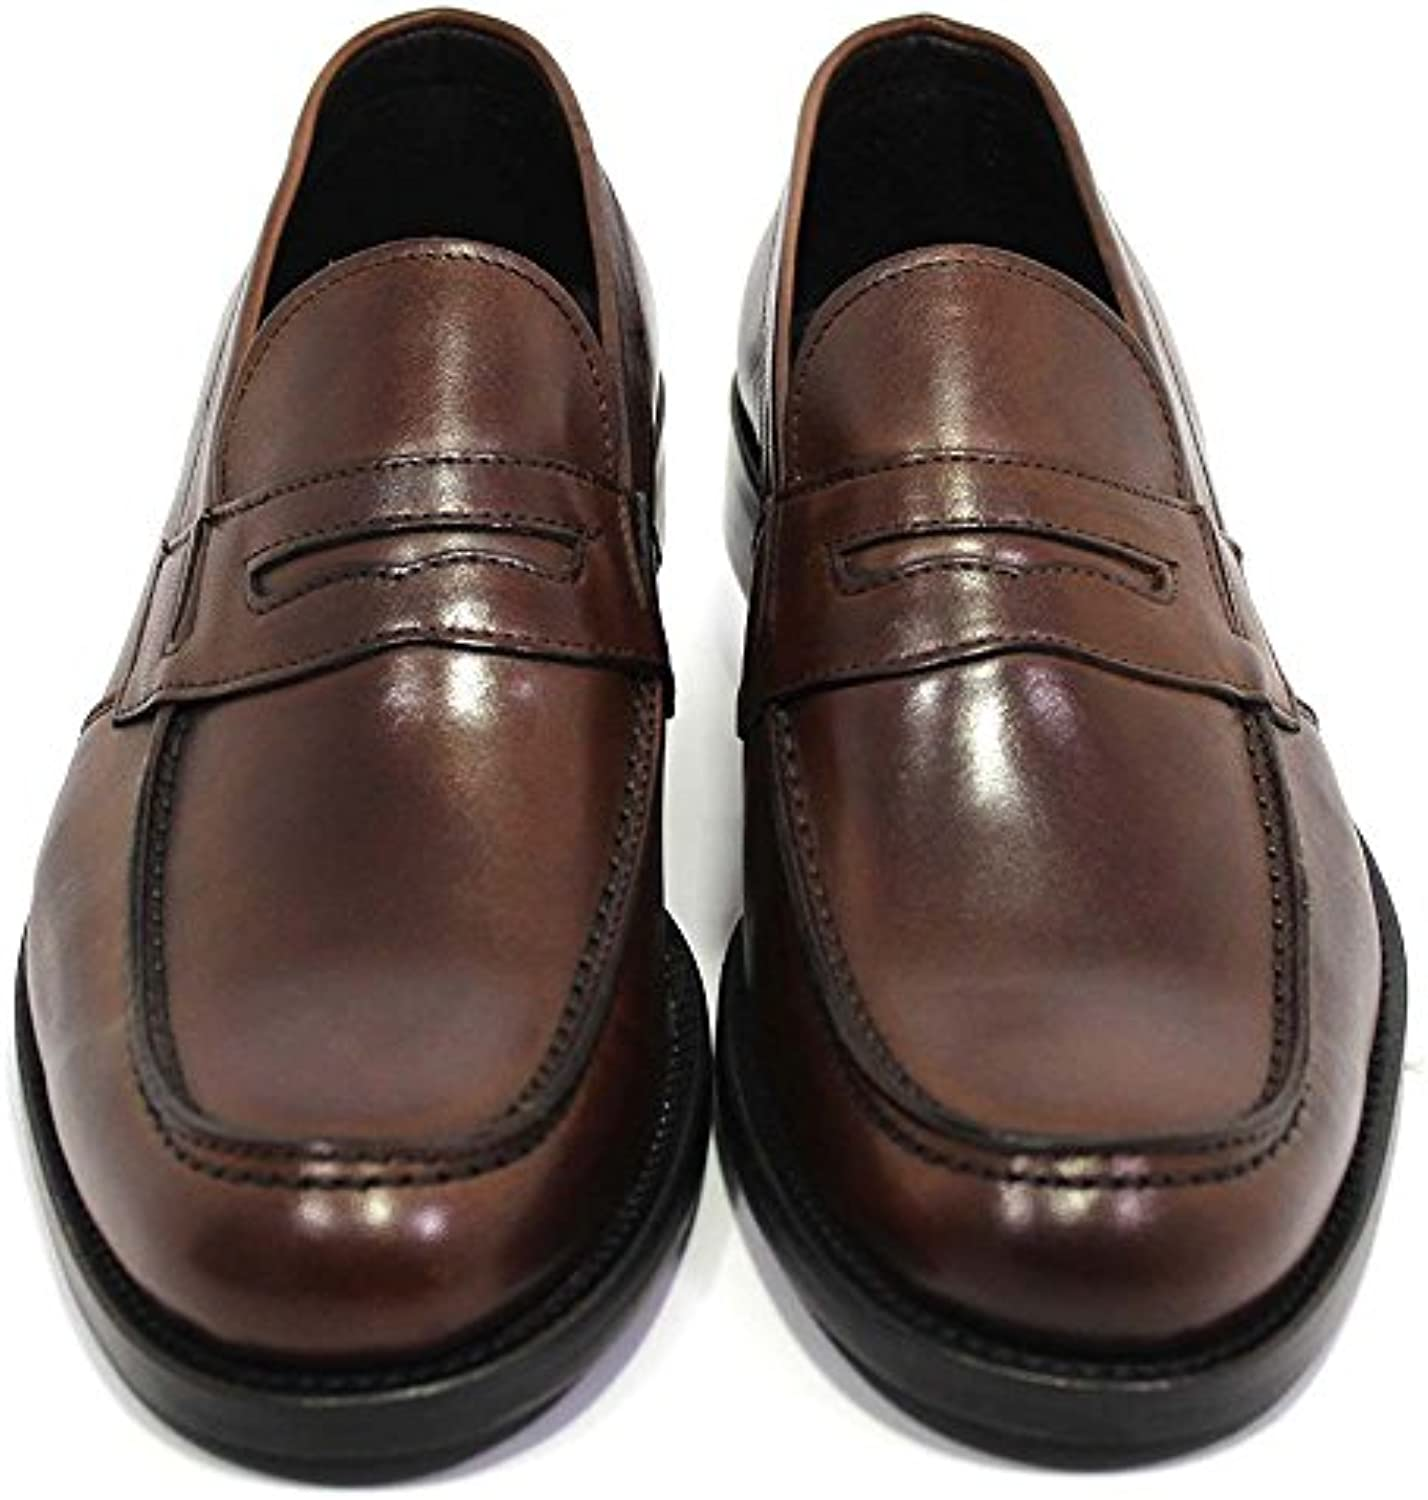 Zapatos de Hombre Made In Italy Mod. Loafers Mazzini Brown TG 43